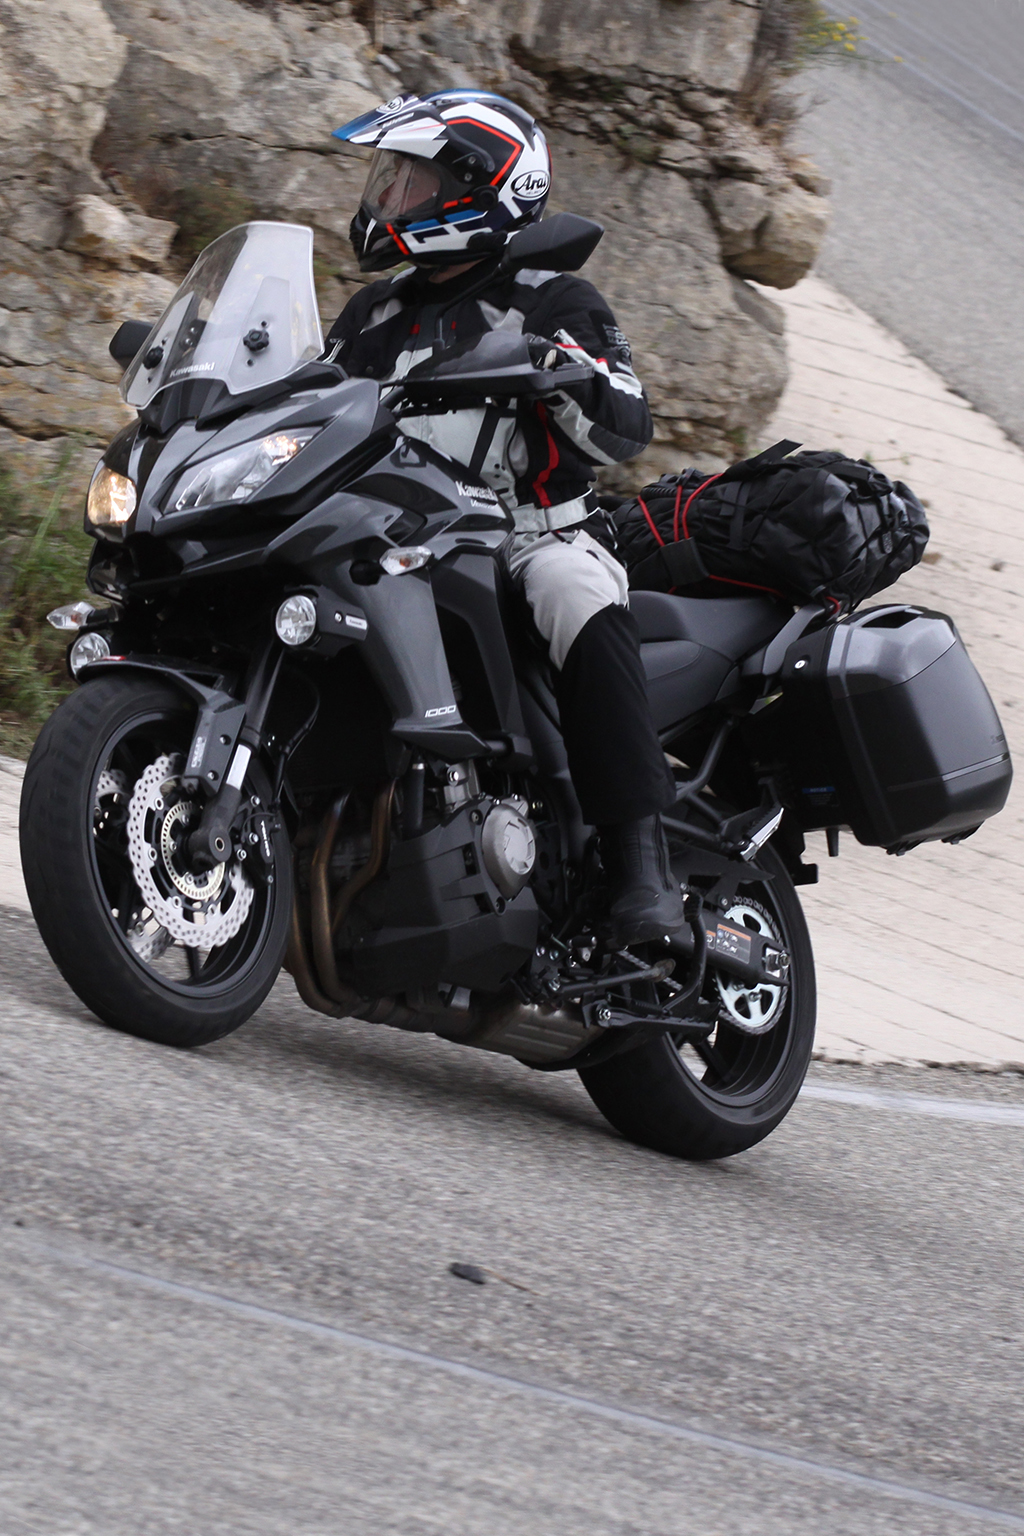 motorfreaks toerstest kawasaki versys 1000 tourer uitdaging. Black Bedroom Furniture Sets. Home Design Ideas